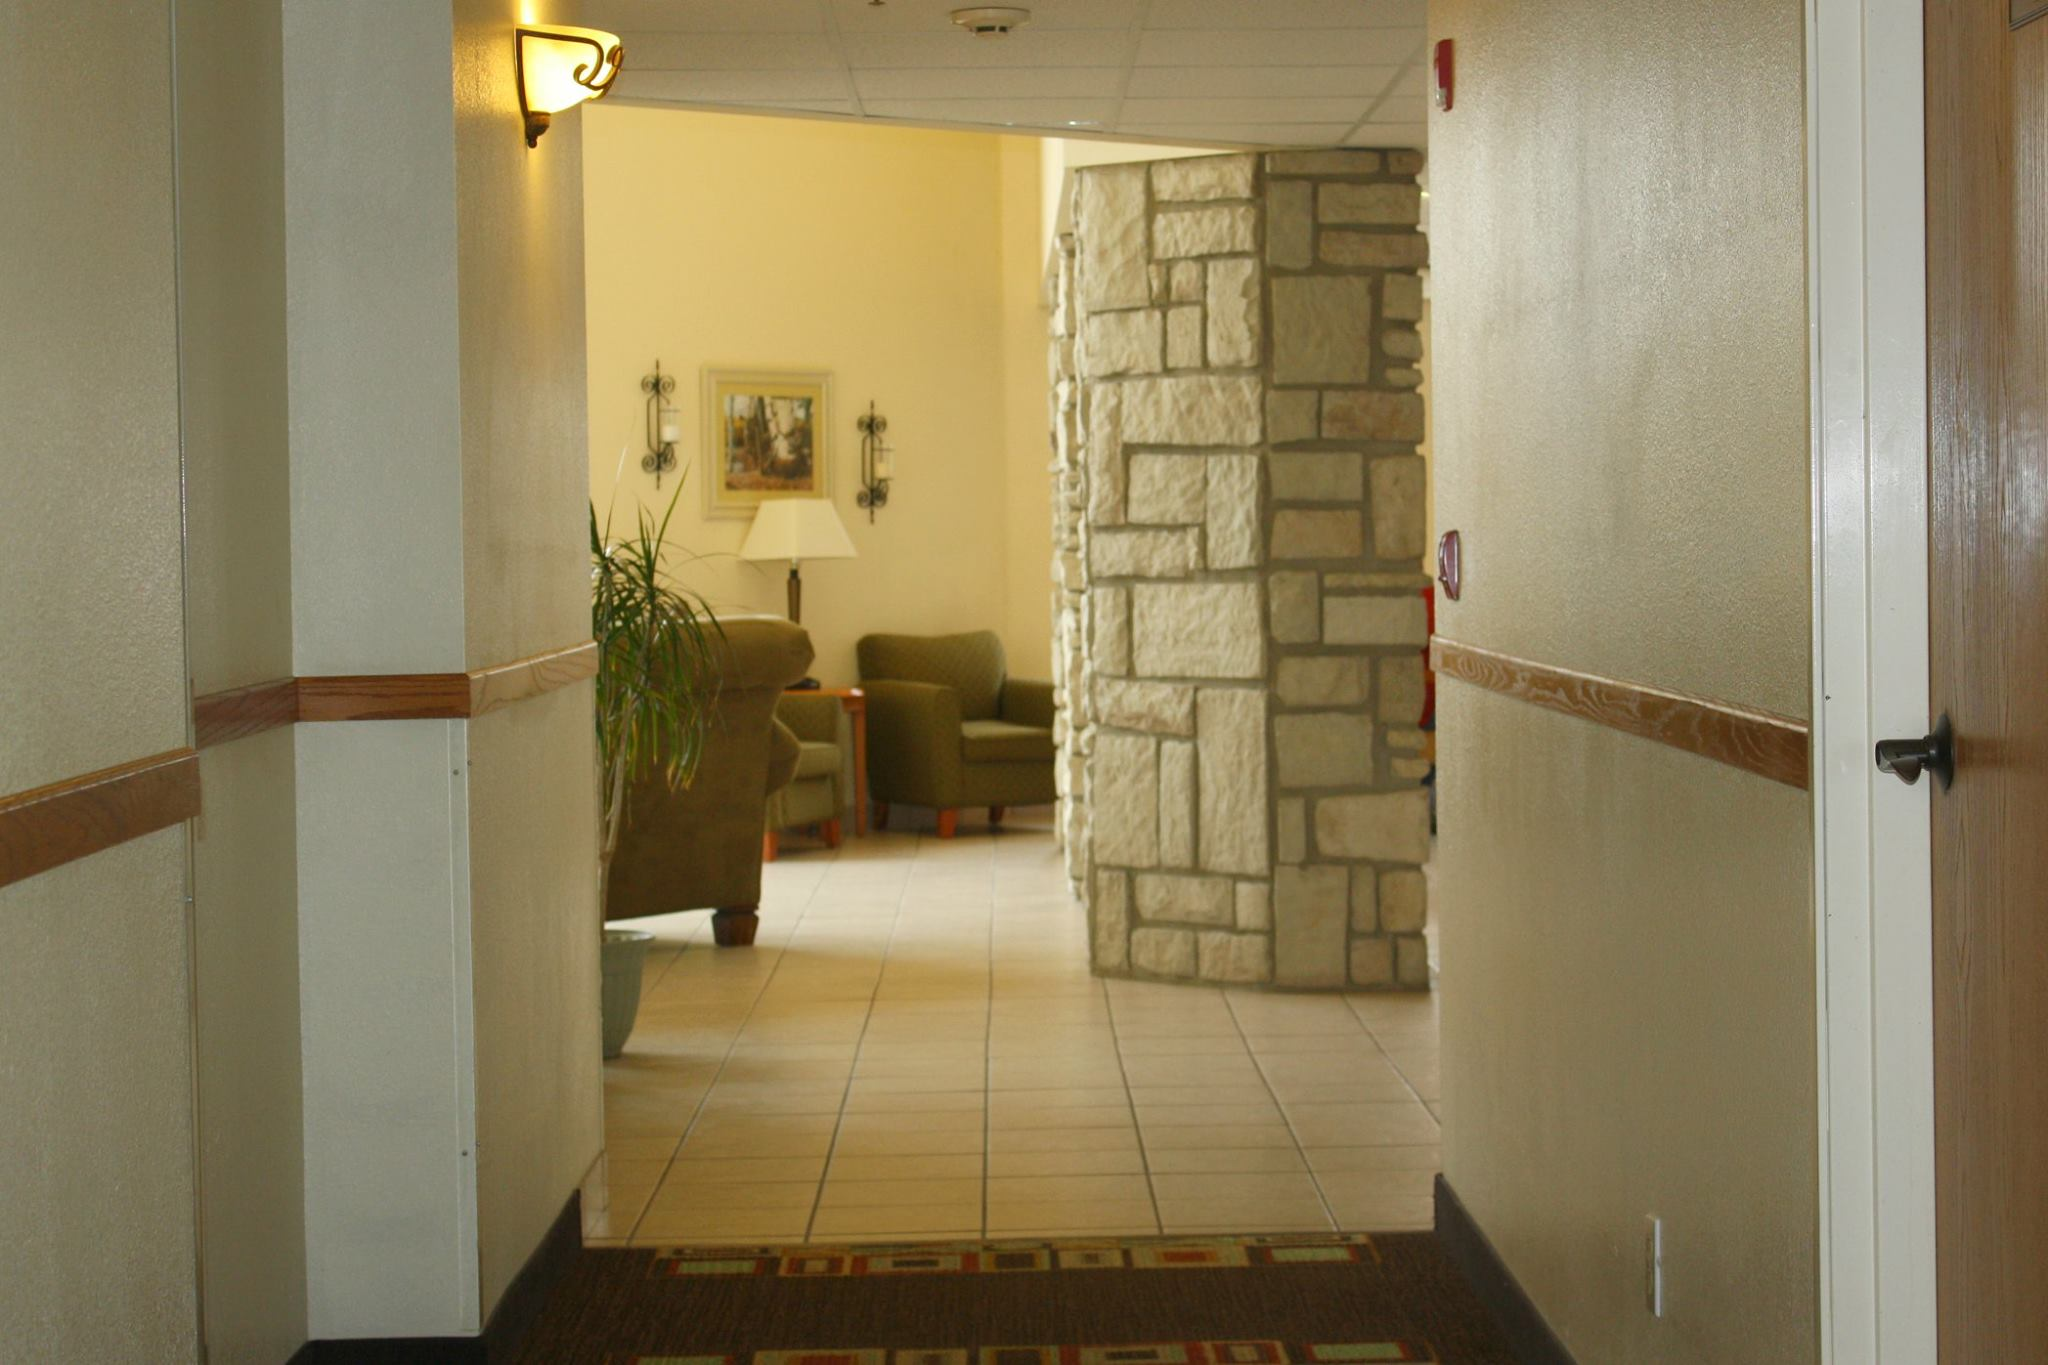 Hallway to common area